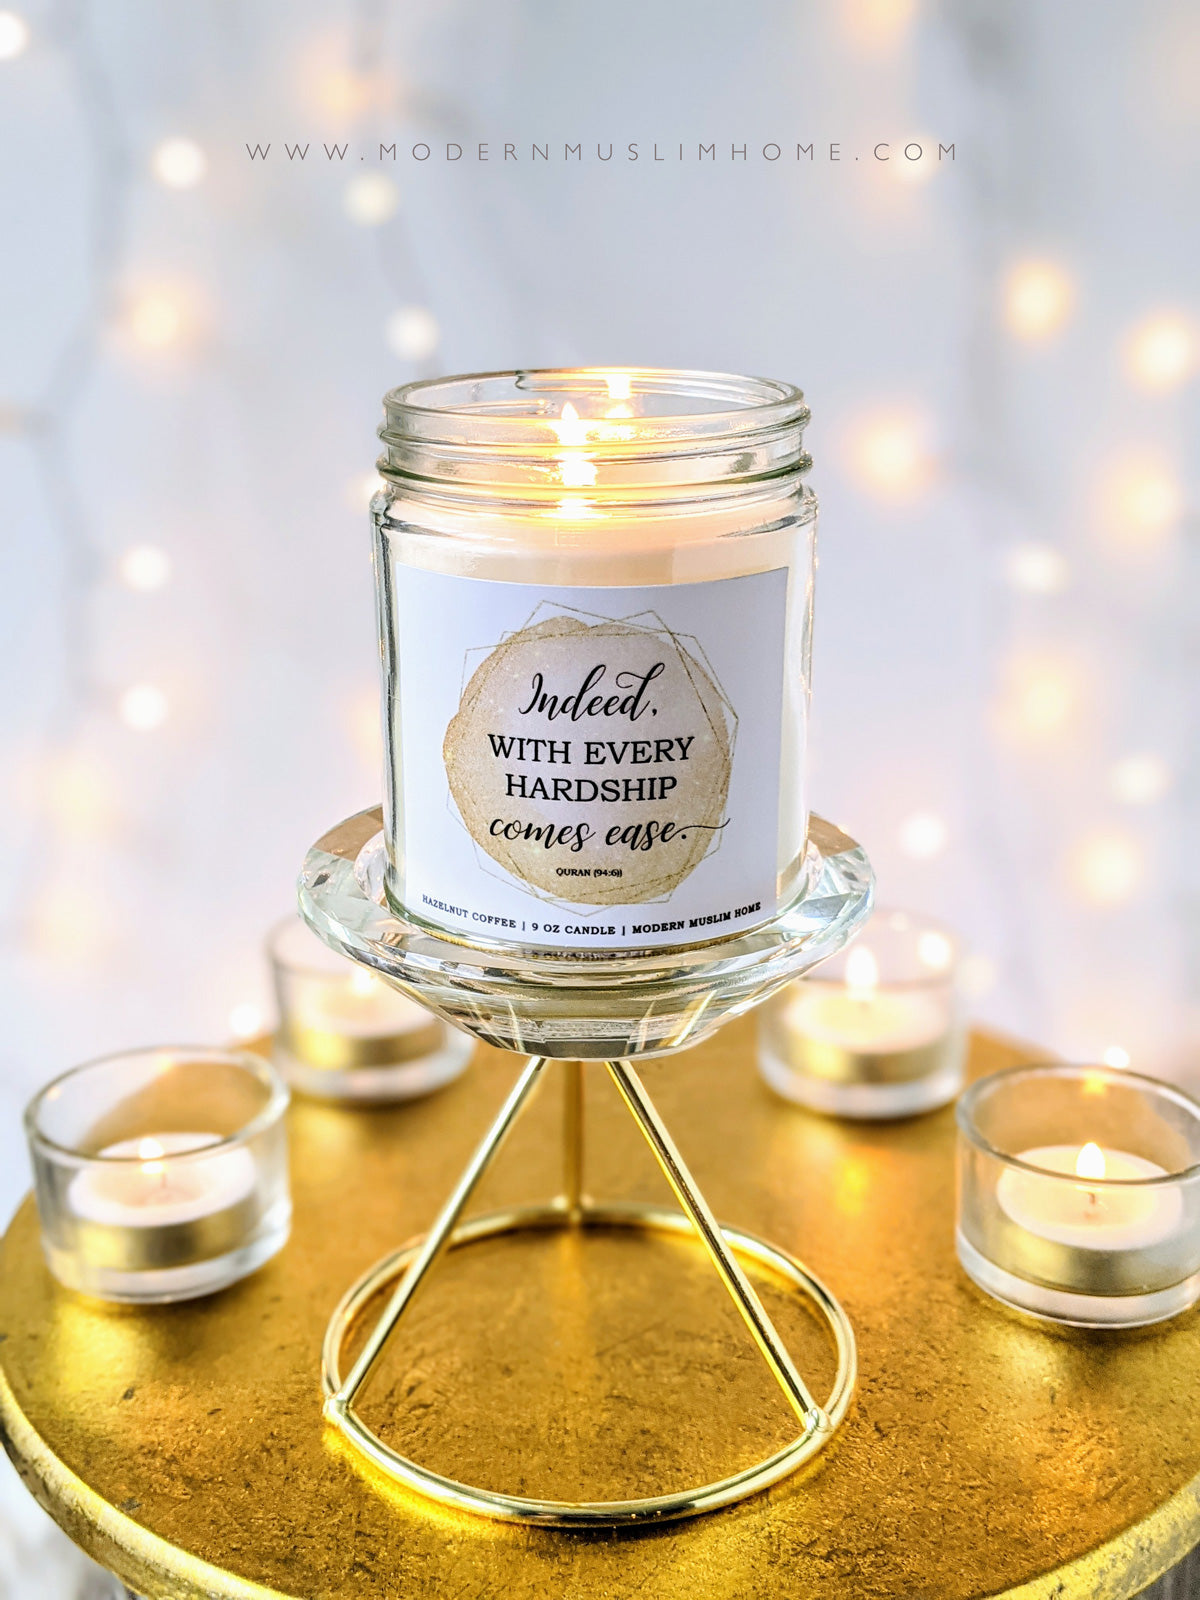 After Hardship Comes Ease Candle